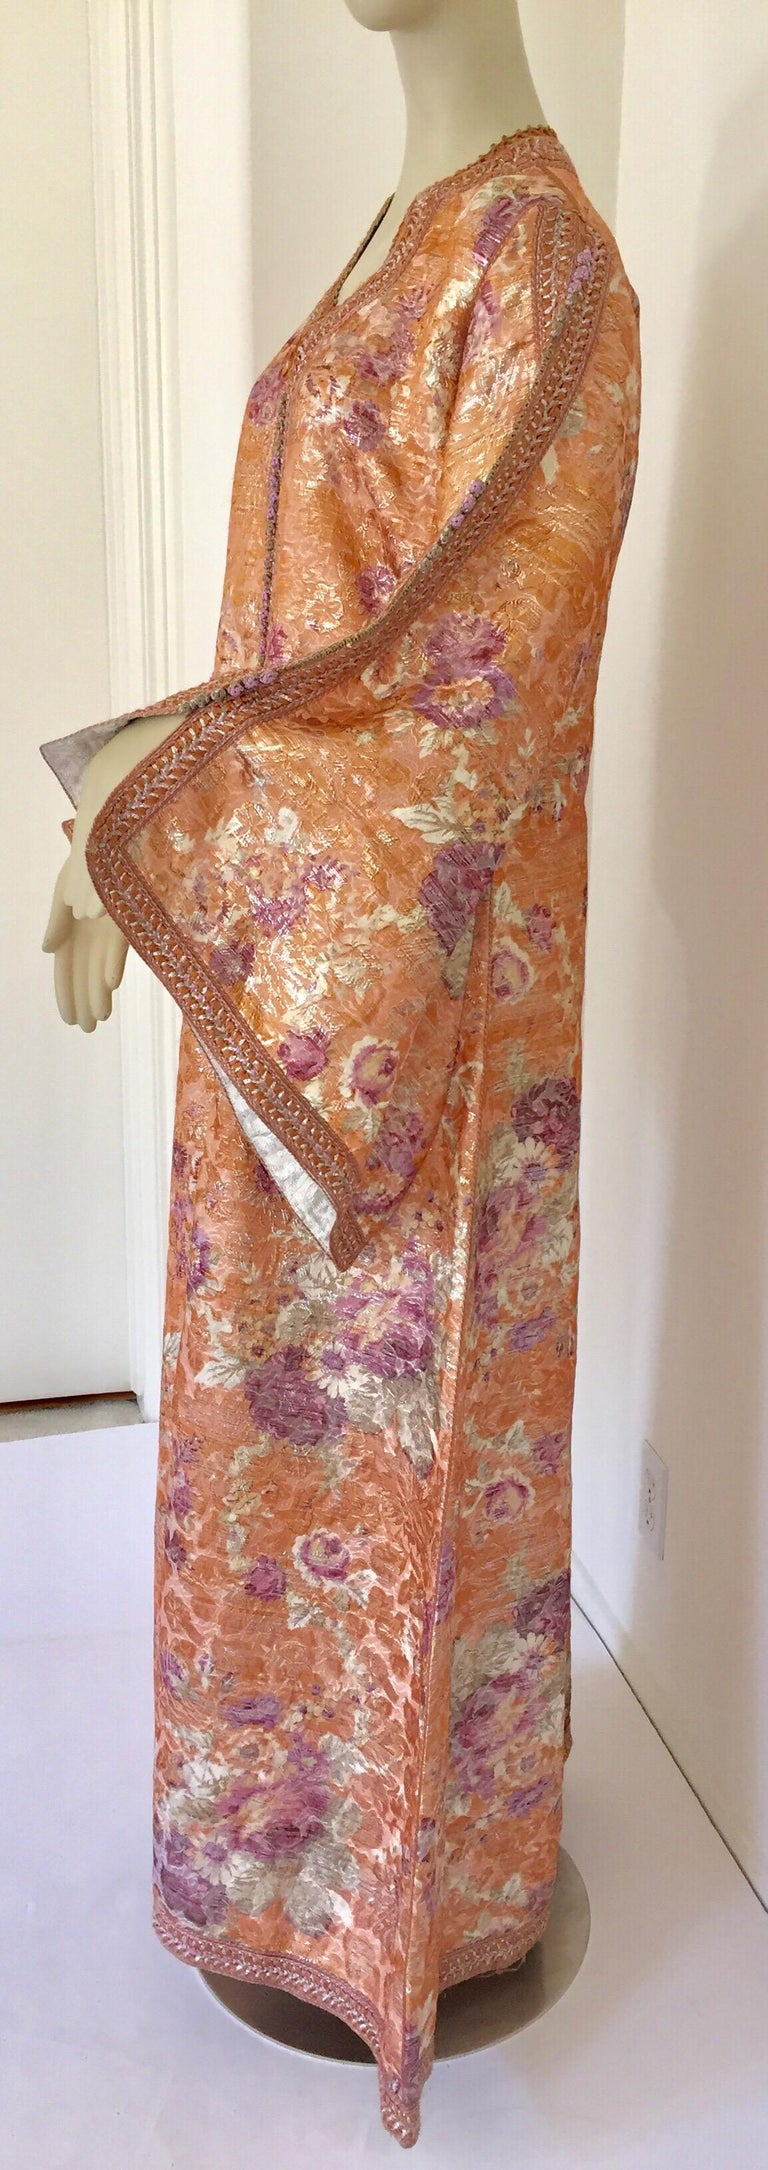 Moroccan Kaftan Orange and Purple Floral with Gold Embroidered Maxi Dress Caftan For Sale 5